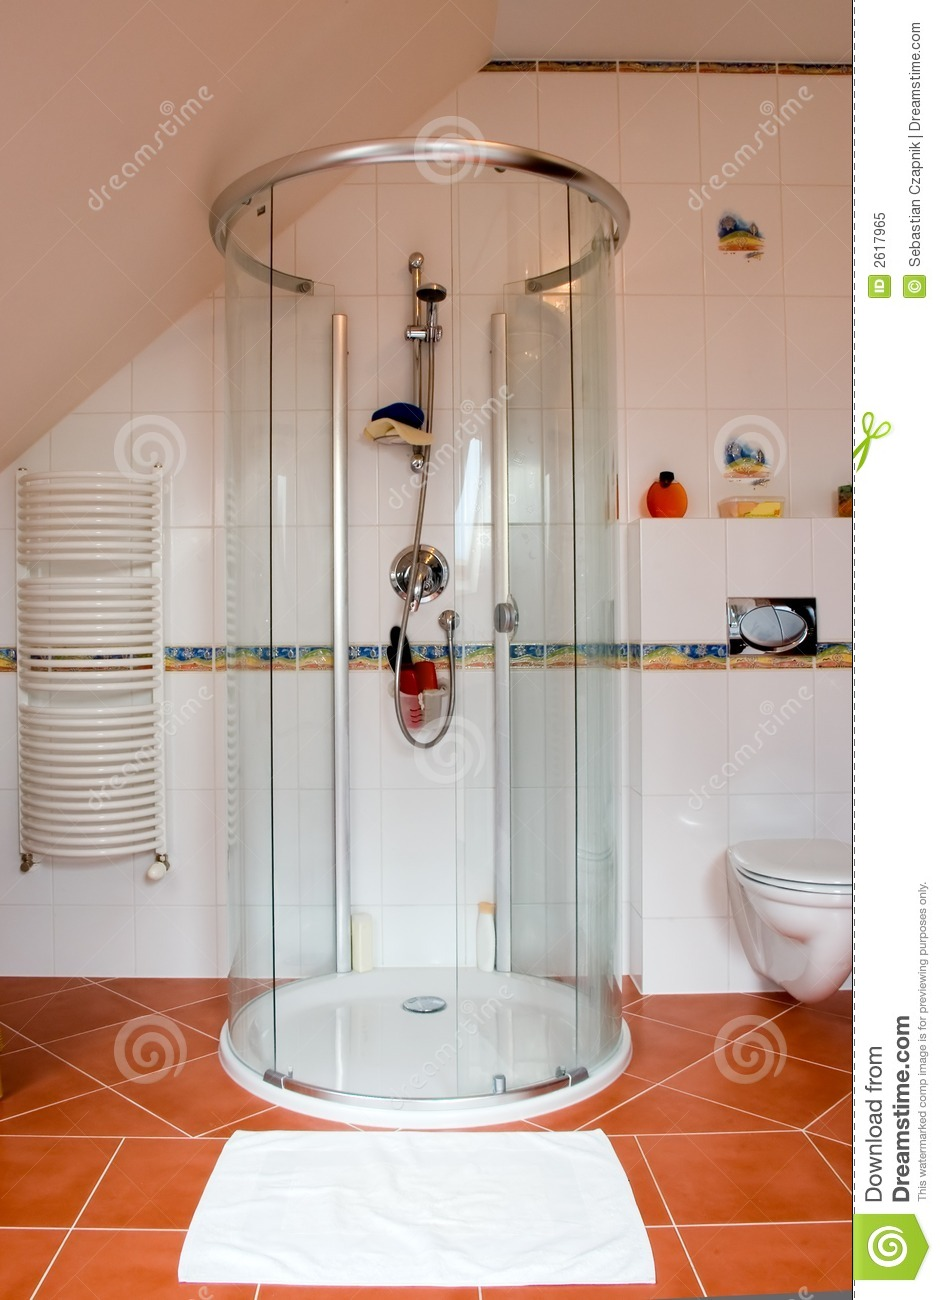 Moderne douchecabine royalty vrije stock foto afbeelding 2617965 - Moderne douche fotos ...